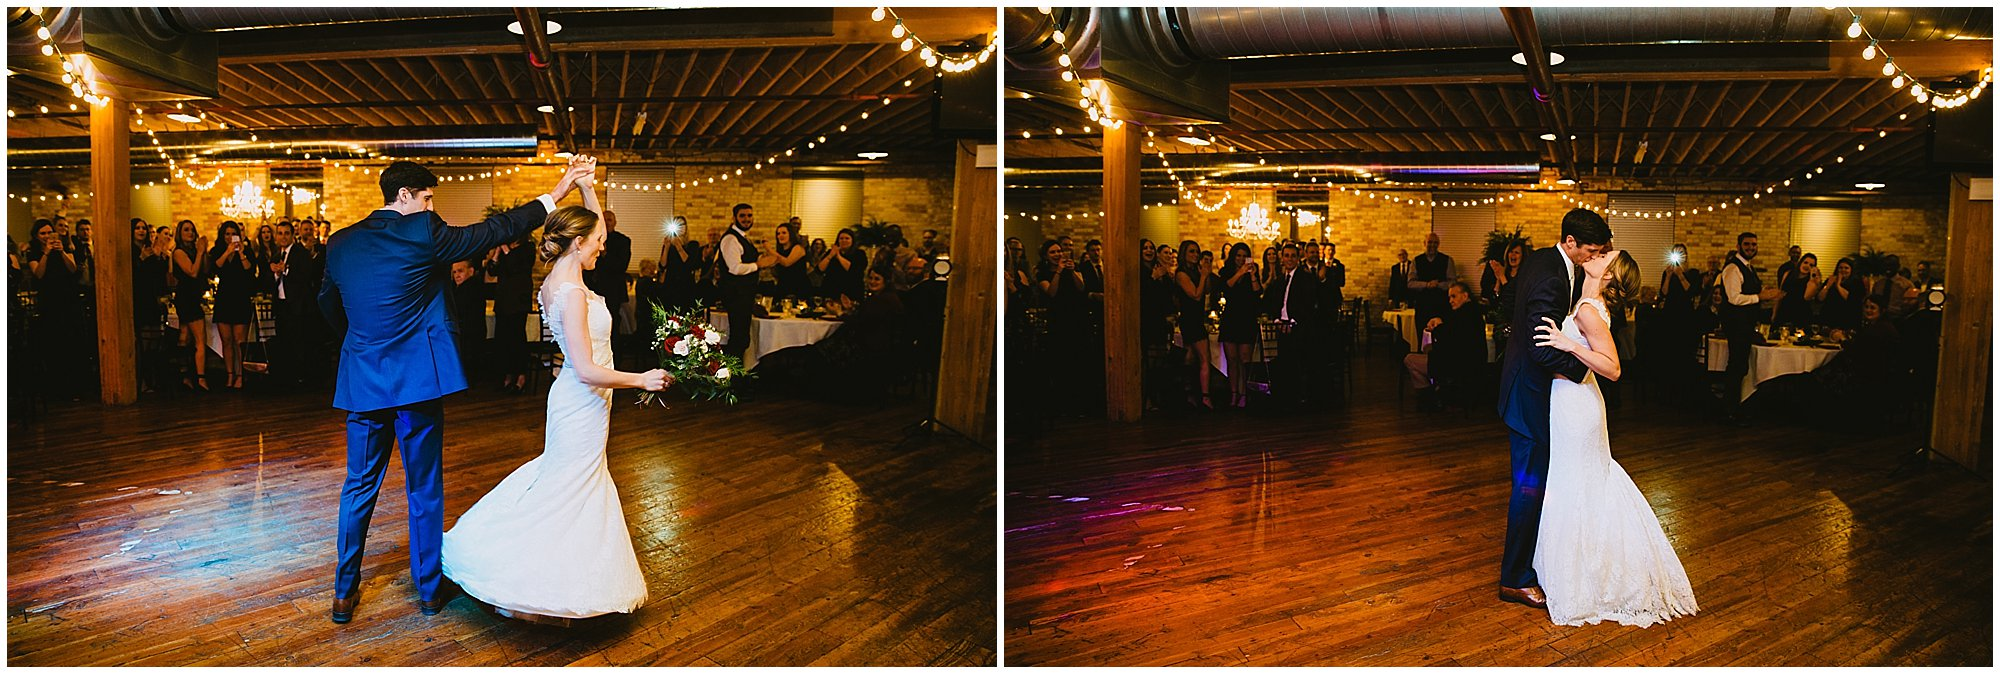 first dance wedding Goei Center Grand Rapids